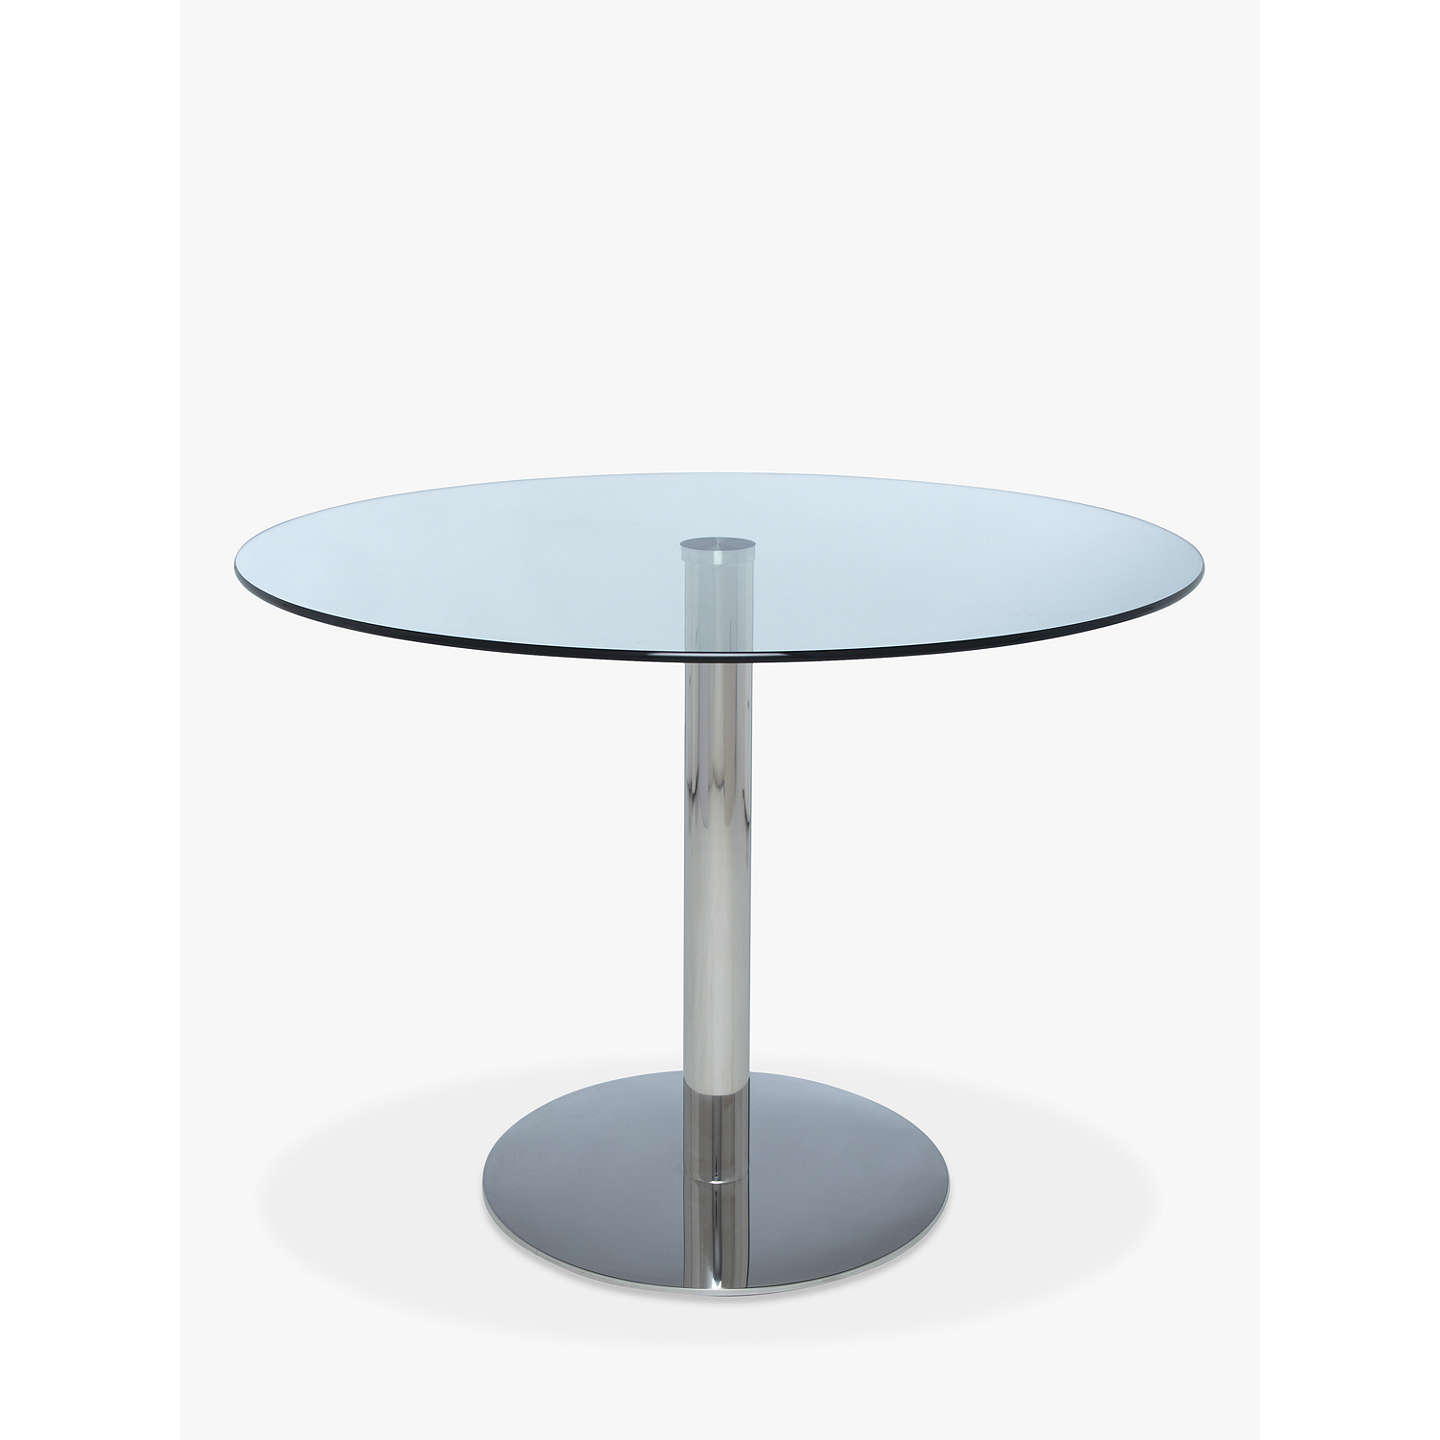 john lewis enzo 4 seater round glass top dining table at john lewis. Black Bedroom Furniture Sets. Home Design Ideas